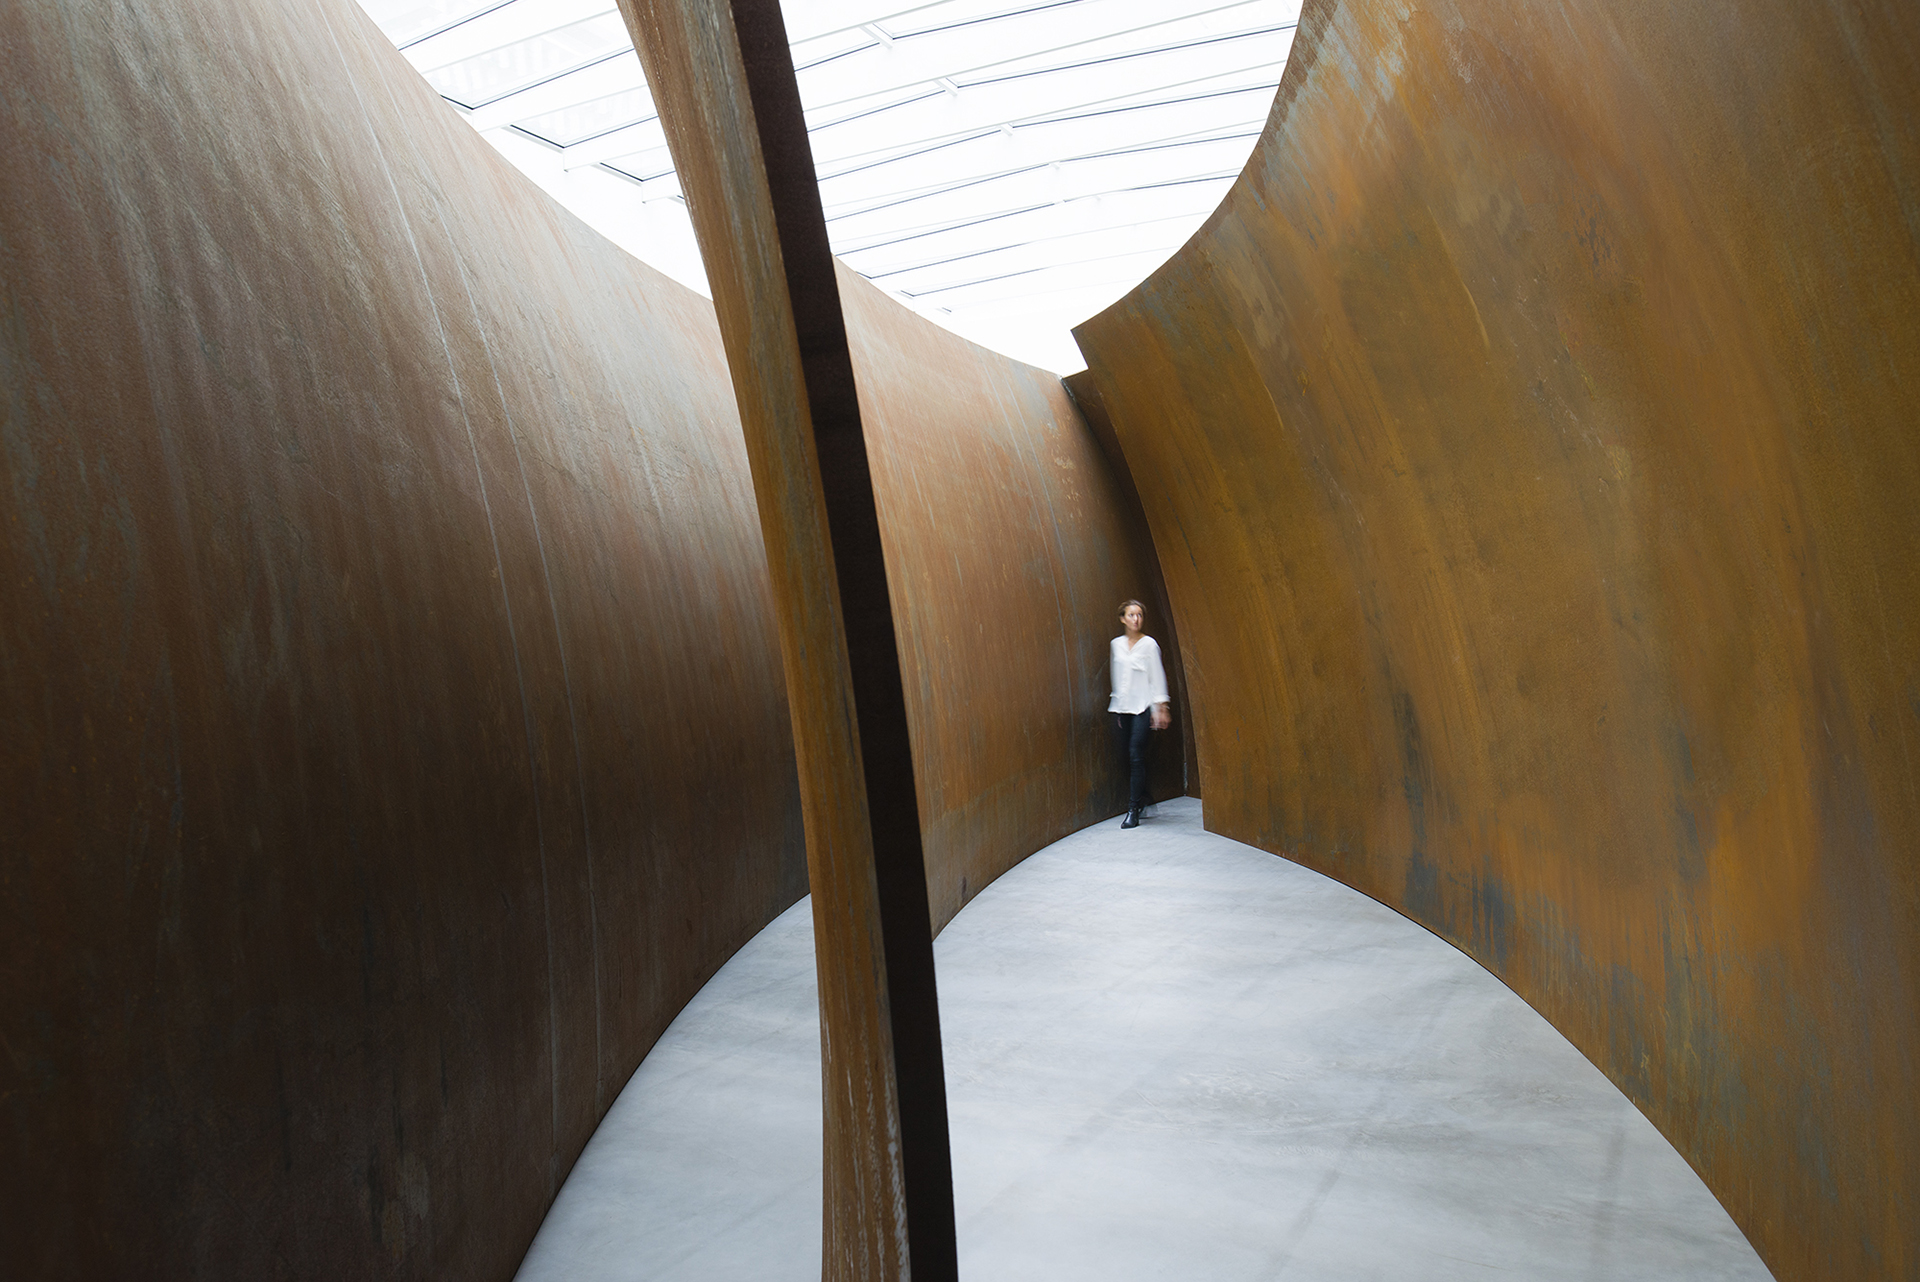 richard-serra-open-ended-voorlinden